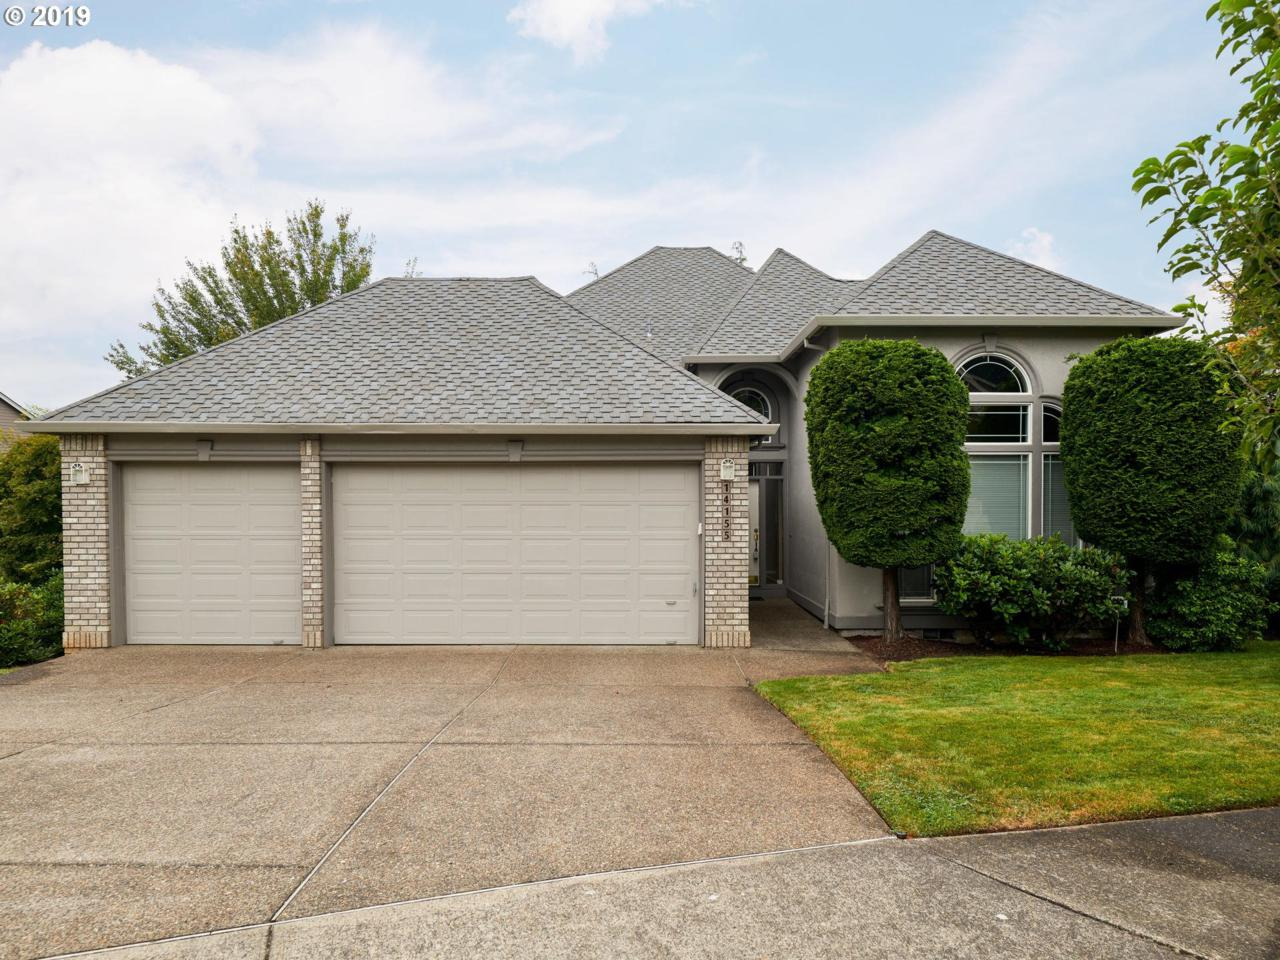 14155 Rolling Meadows Dr - Photo 1